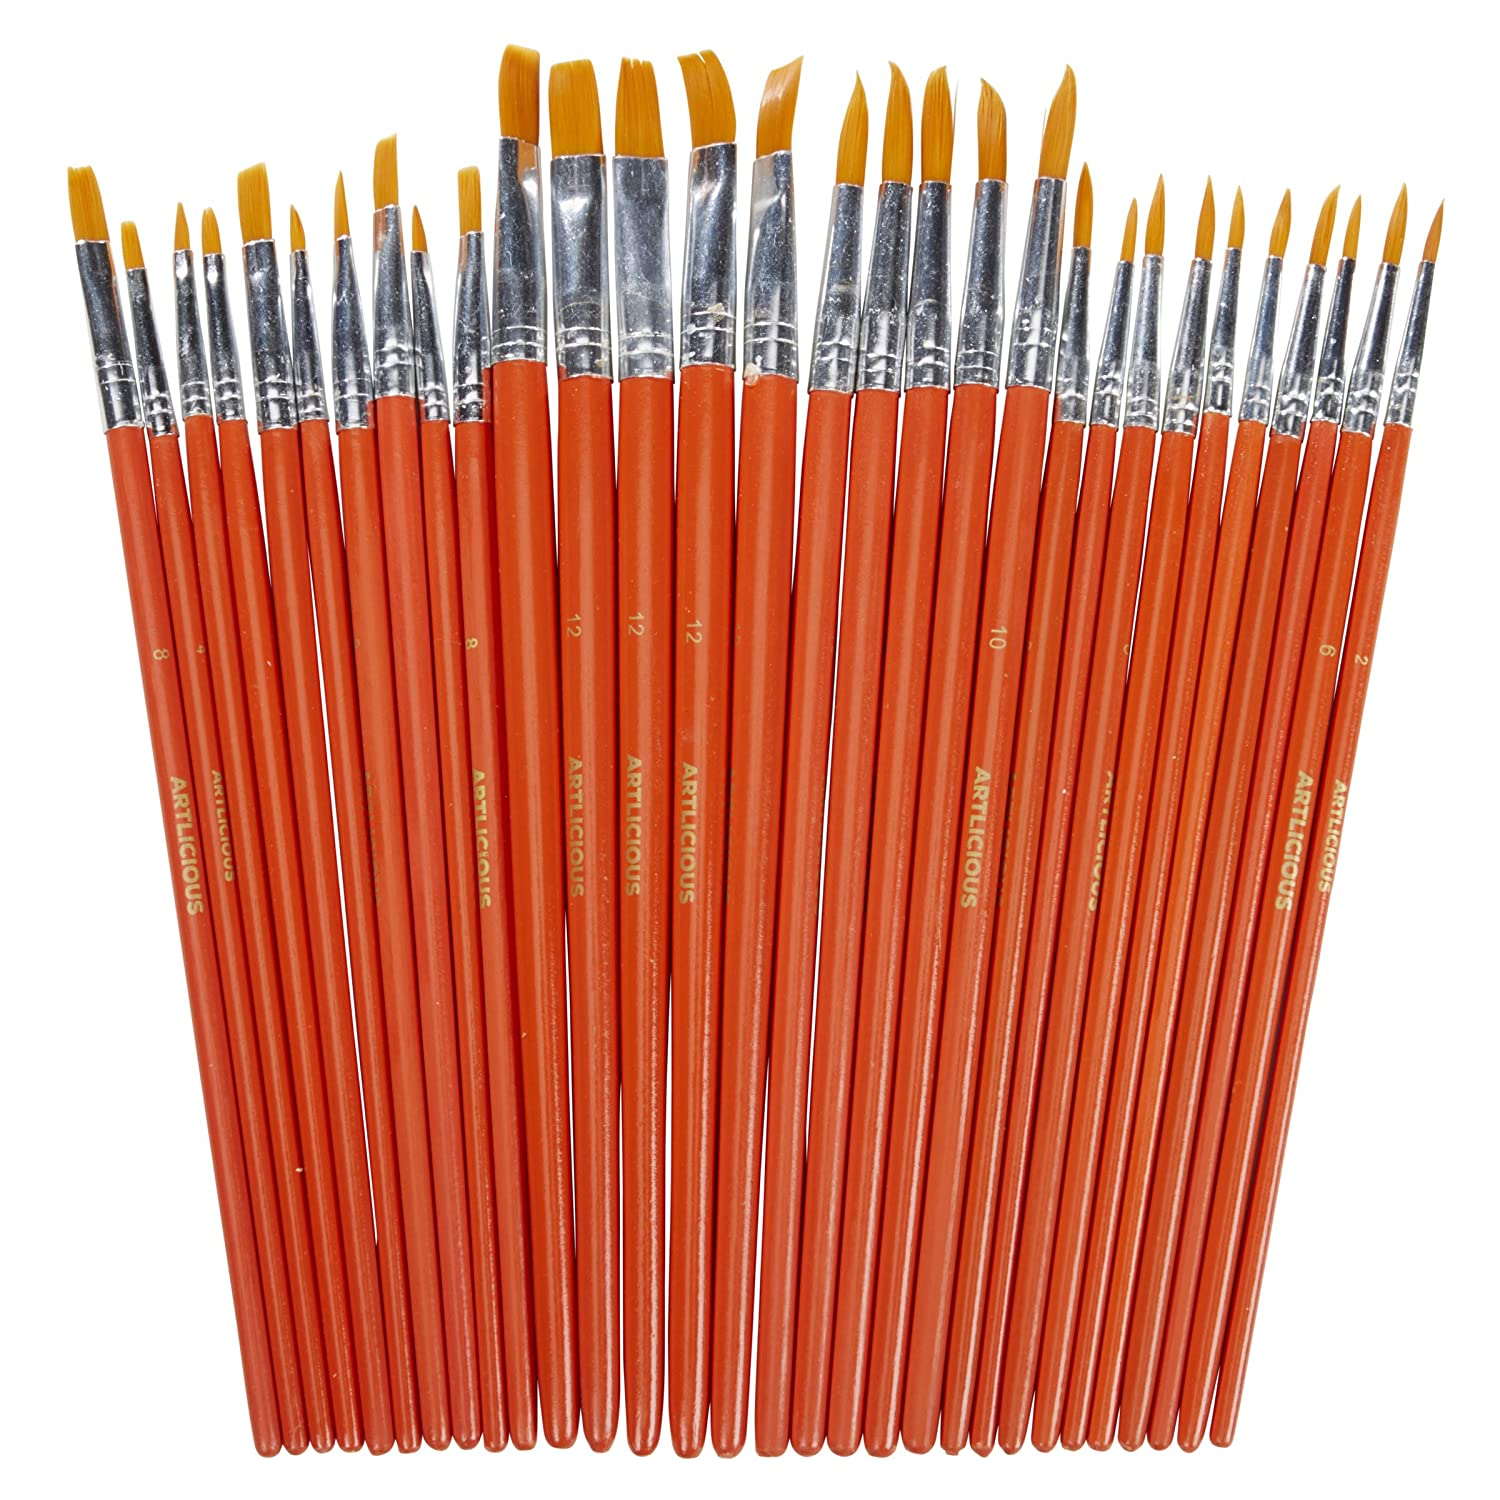 Artlicious - 30 All Purpose Golden Taklon Classroom Paint Brush Value Pack - Great with Acrylic, Oil, Watercolor, Gouache Sorillo Brands